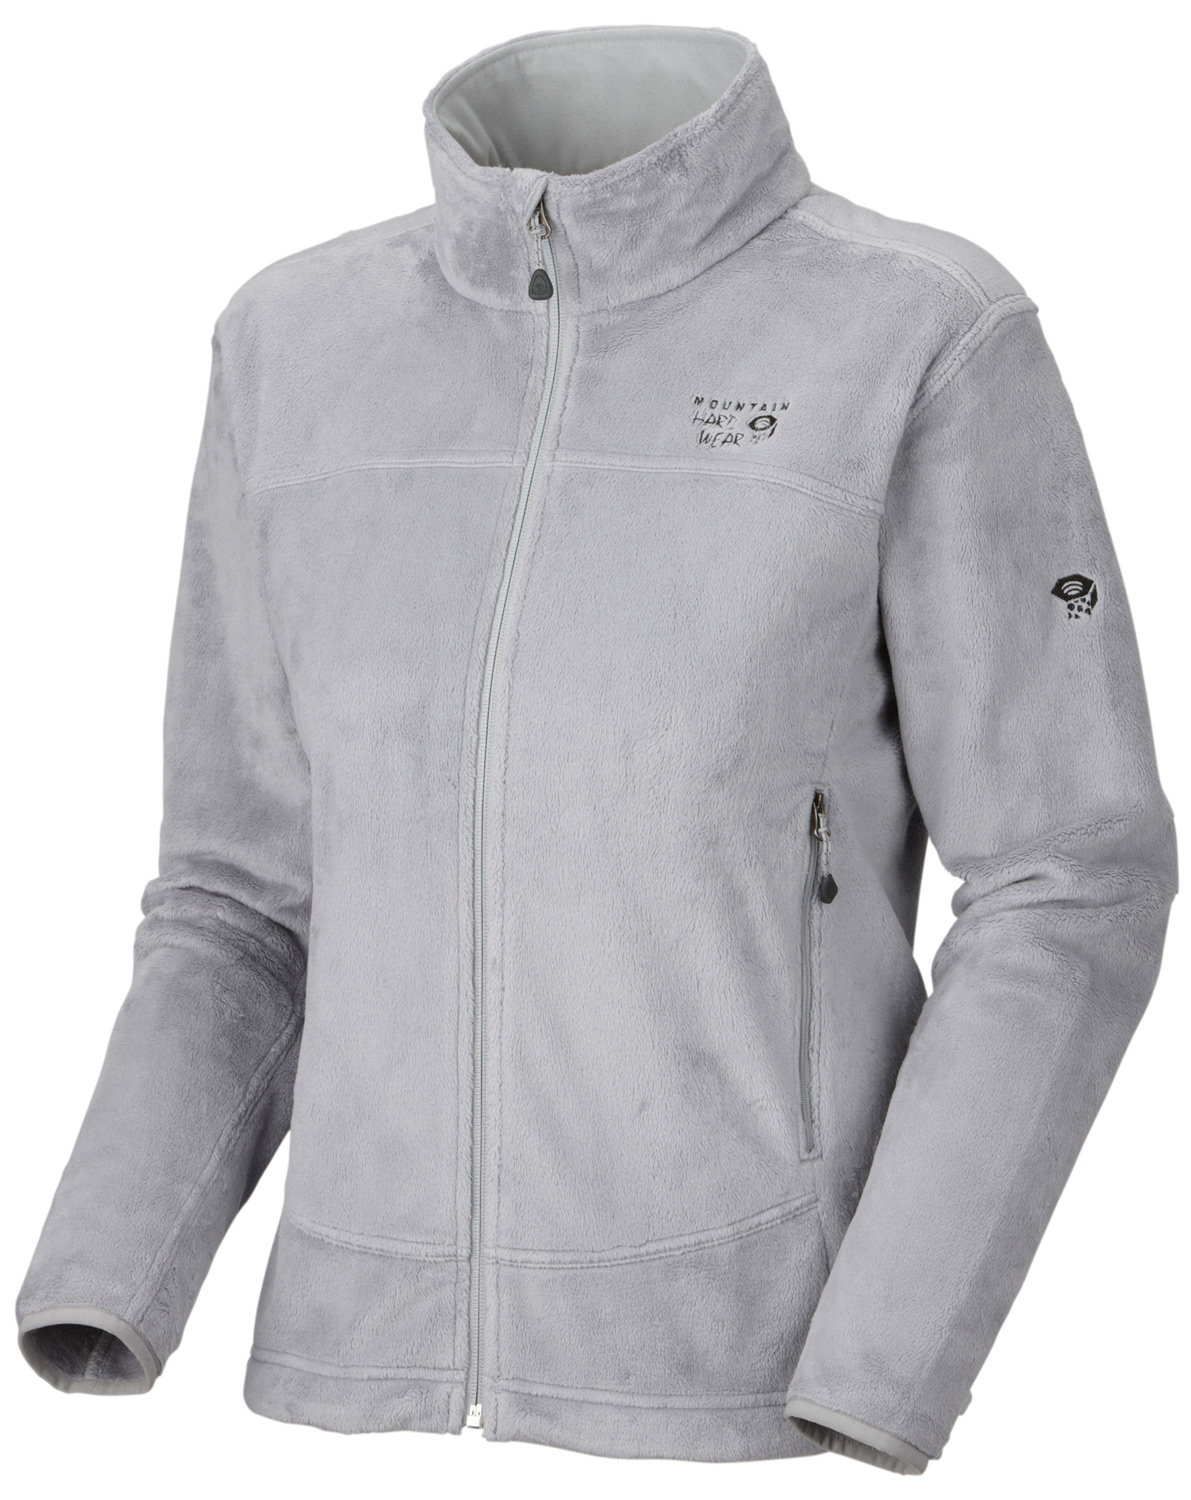 "Key Features of the Mountain Hardwear Pyxis Jacket: Soft, warm and luscious fleece Zip handwarmer pockets Dual hem drawcords for quick fit adjustments Fleece-lined chin guard prevents zipper chafe AVG. WEIGHT: 14 oz; 383 g CENTER BACK LENGTH: 25.5""; 65 cm FABRIC: body: Voluptuous Velboa (100% polyester) - $75.95"